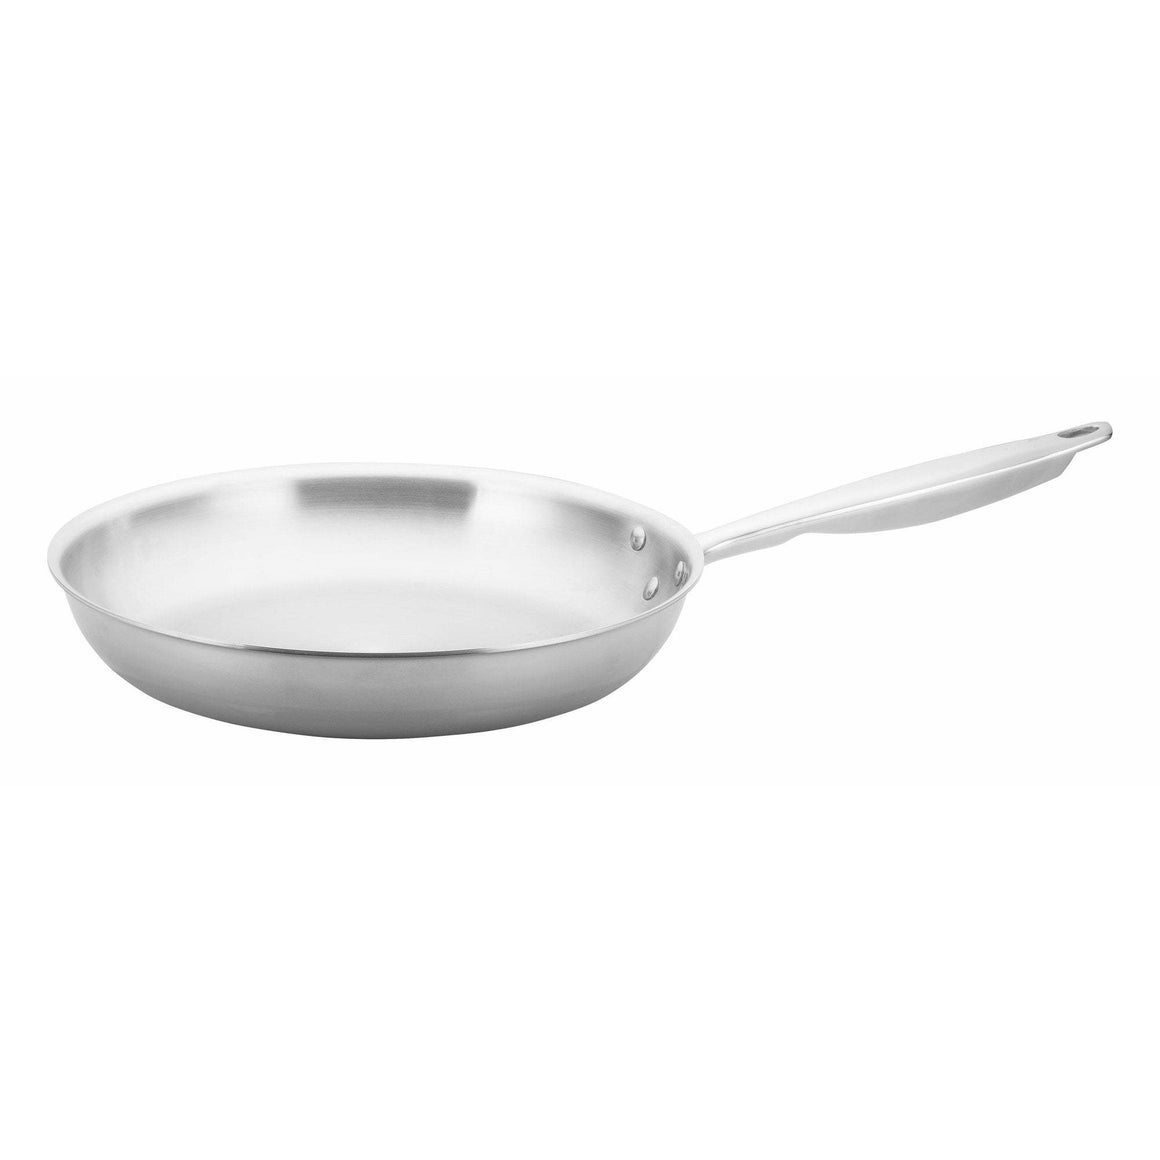 "Winco - TGFP-12 - TRI-GEN™ Tri-Ply Fry Pan, Natural, 12"" - Cookware"